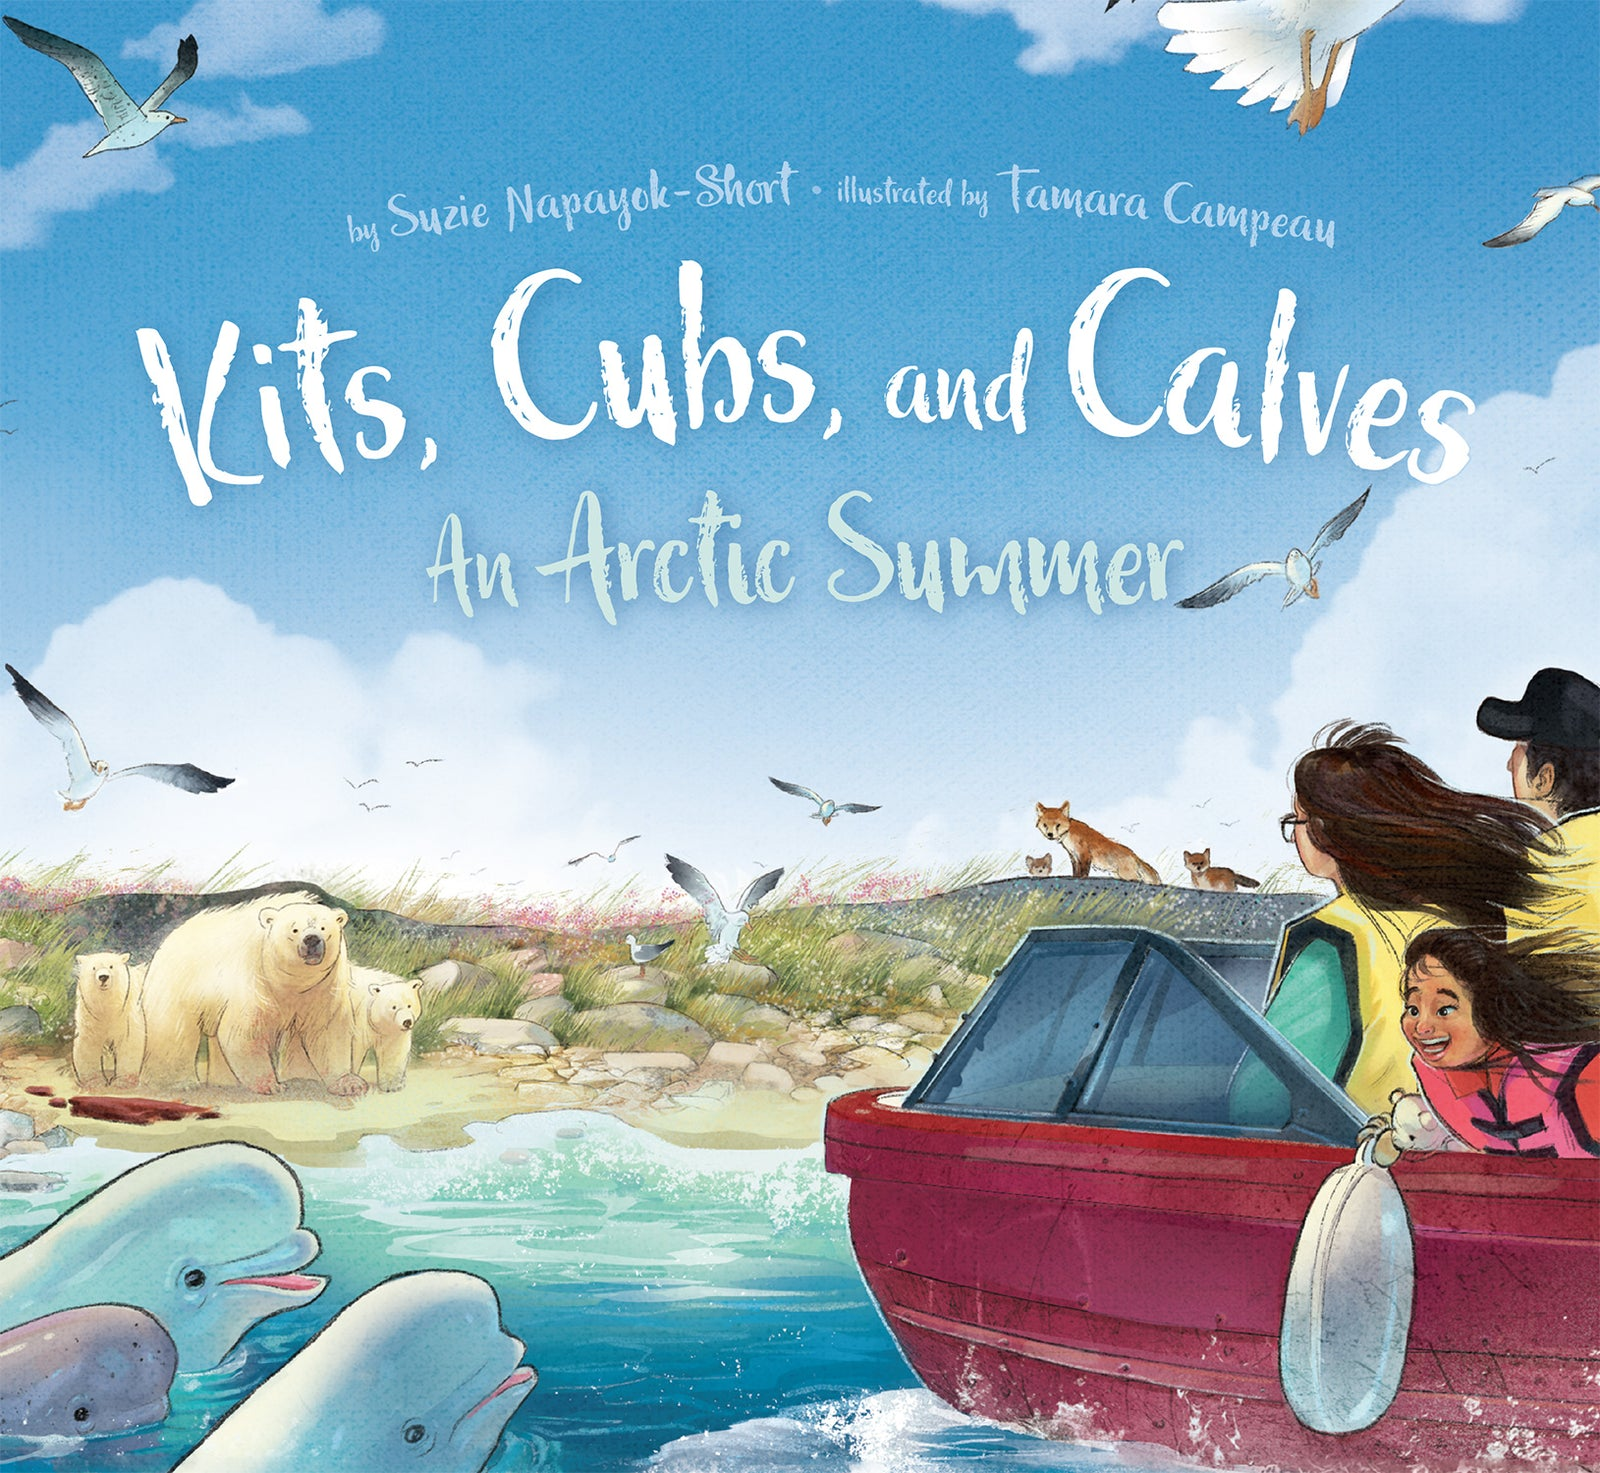 Kits, Cubs, and Calves: An Arctic Summer